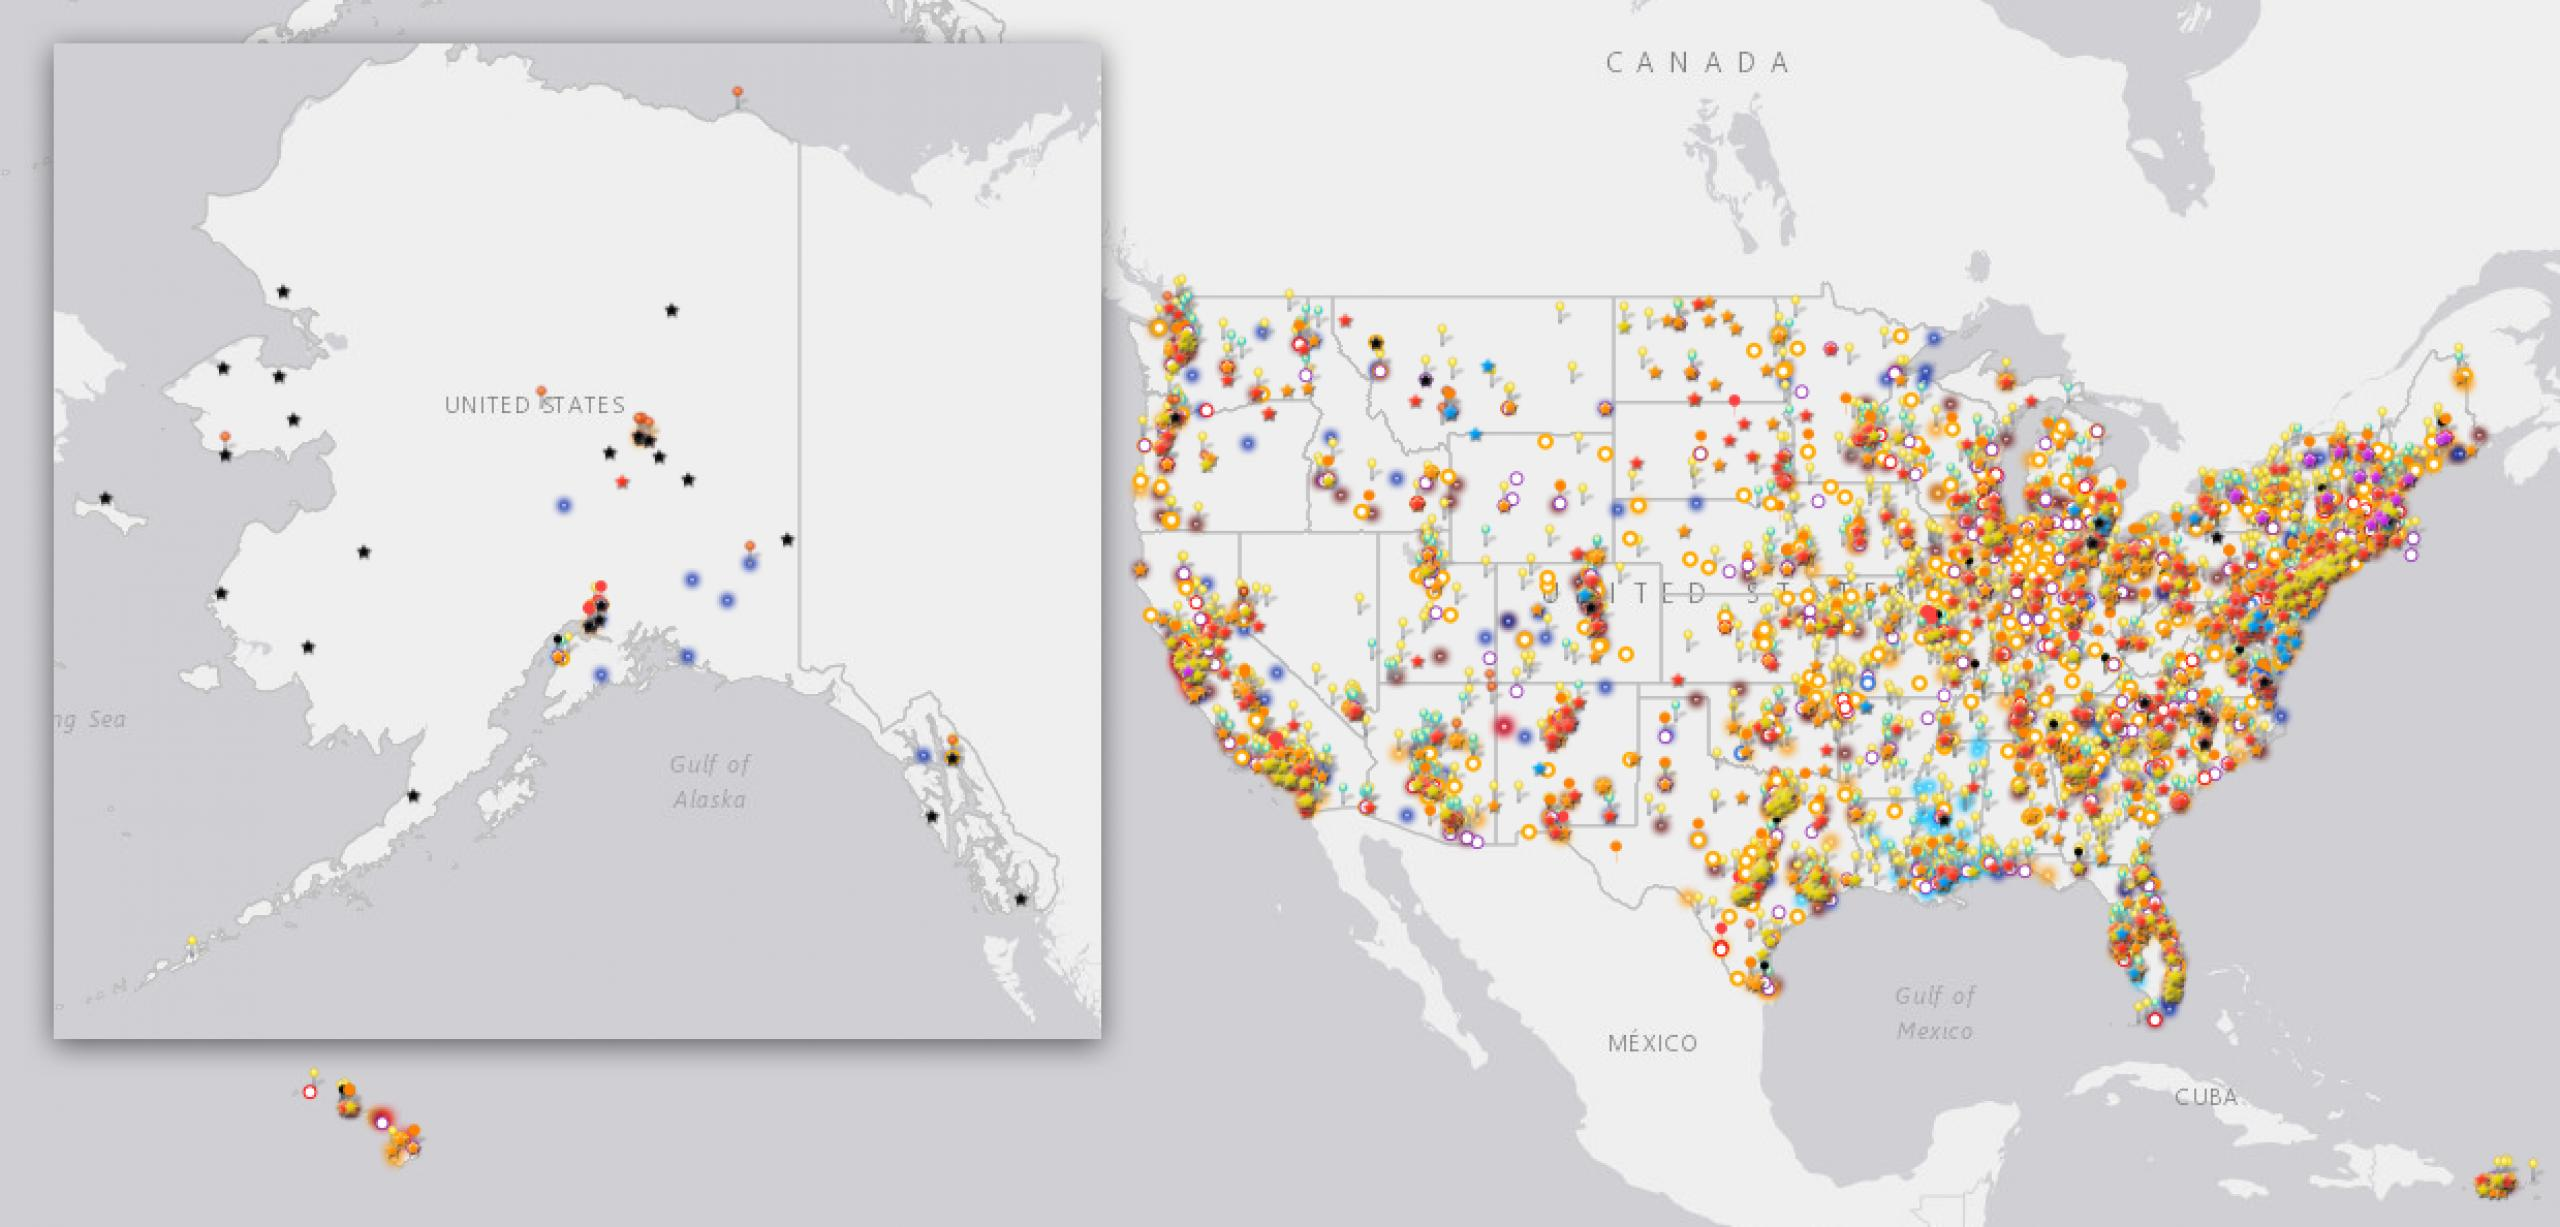 Map of United States with color coded pins representing Science Activation program reach across the country.